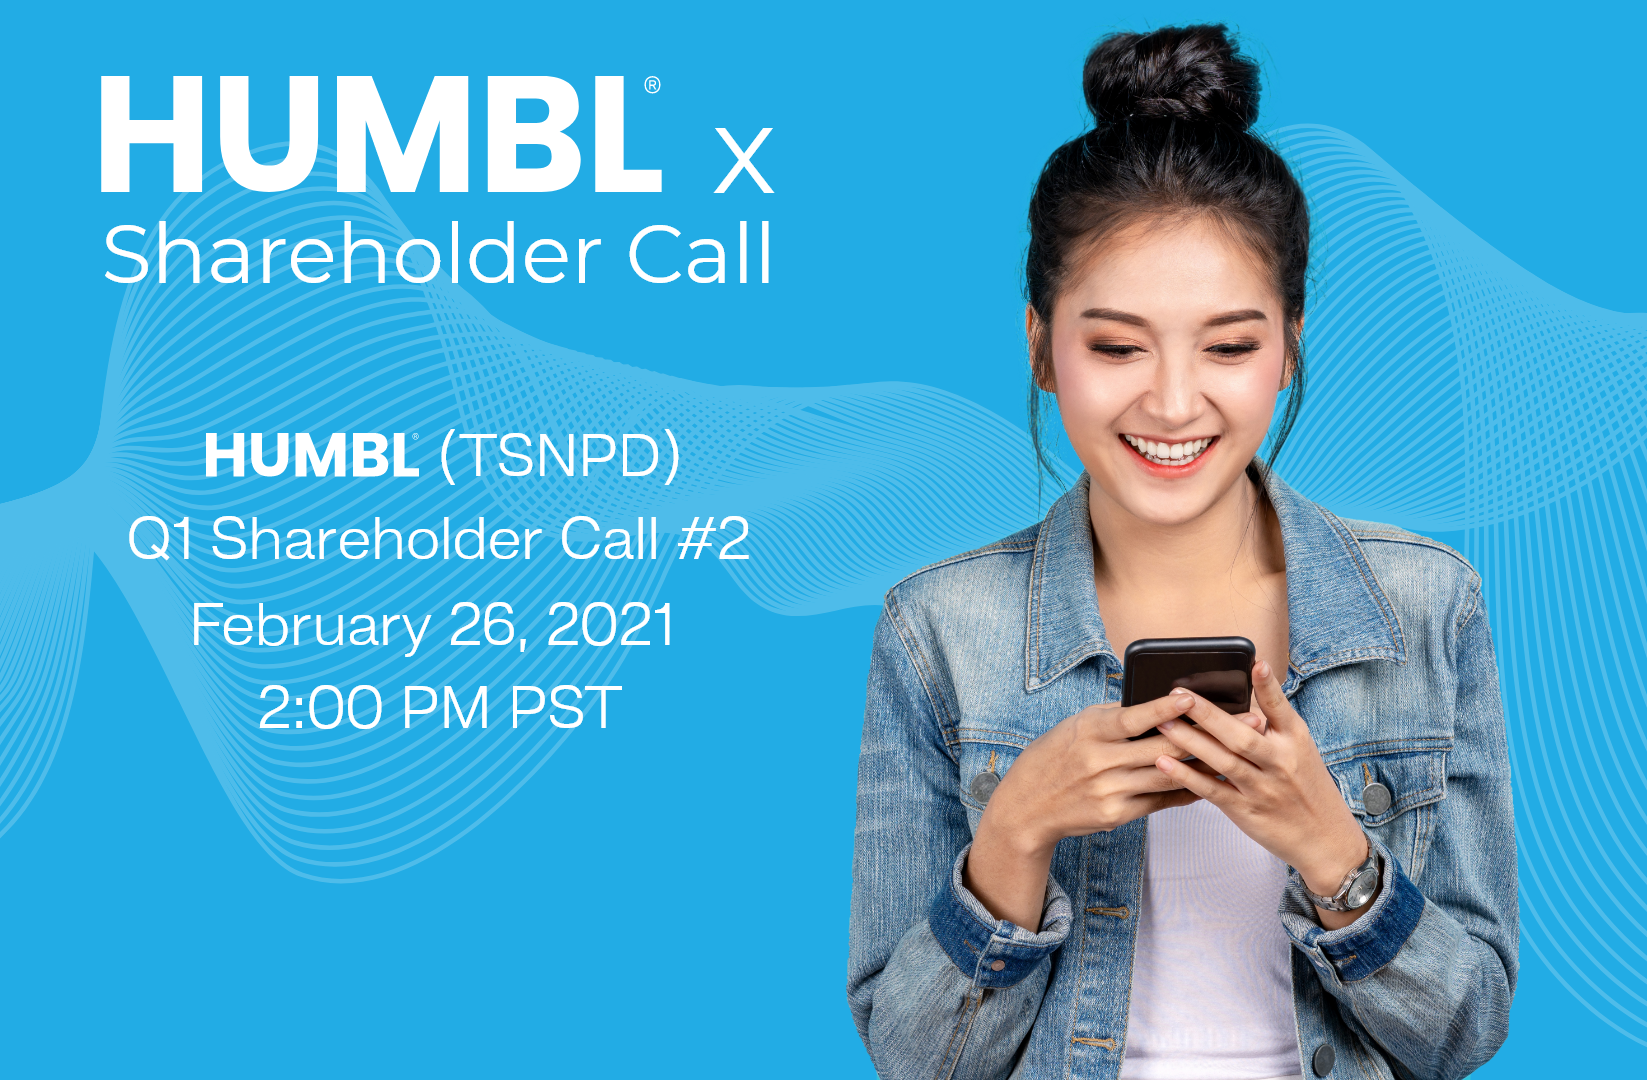 HUMBL, Inc. Announces Shareholder Conference Call to Take Place Today